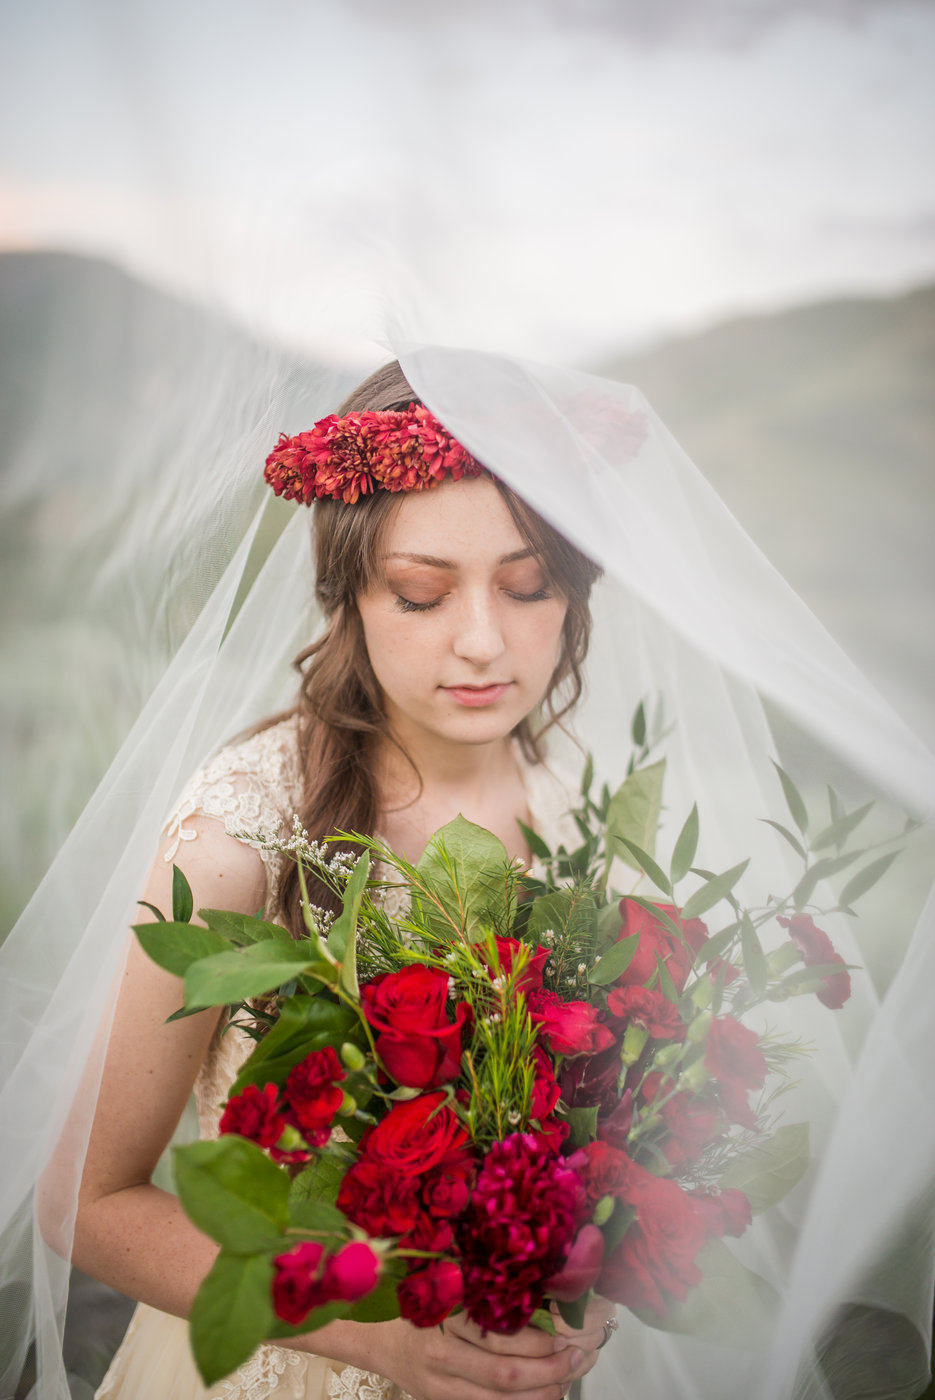 Intertwined Floral-Utah Photographer-Utah Wedding Photographer-Draper, Utah-Utah Bridals (3).jpg